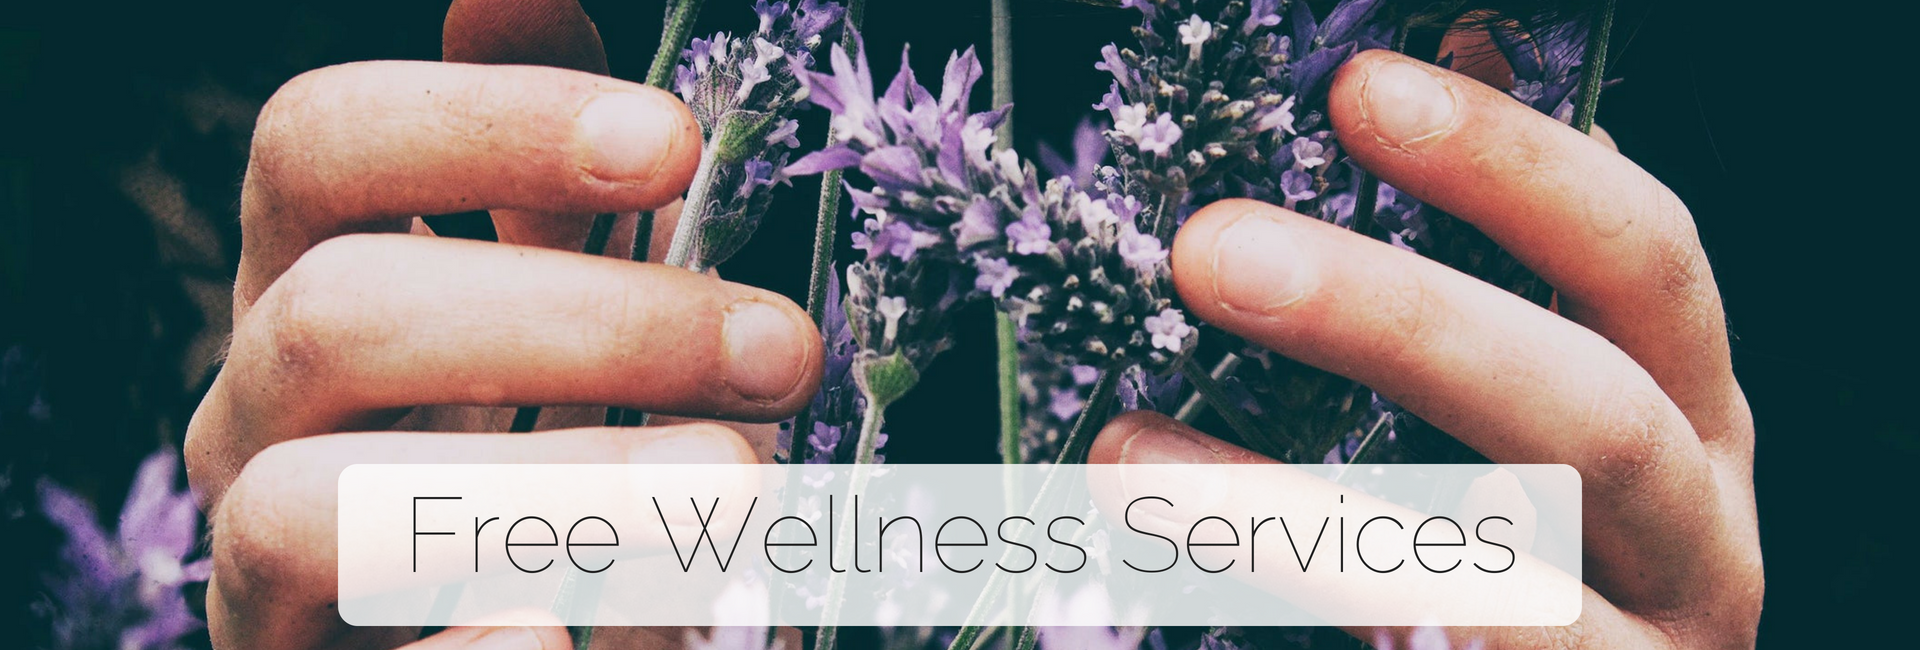 Free Wellness Services